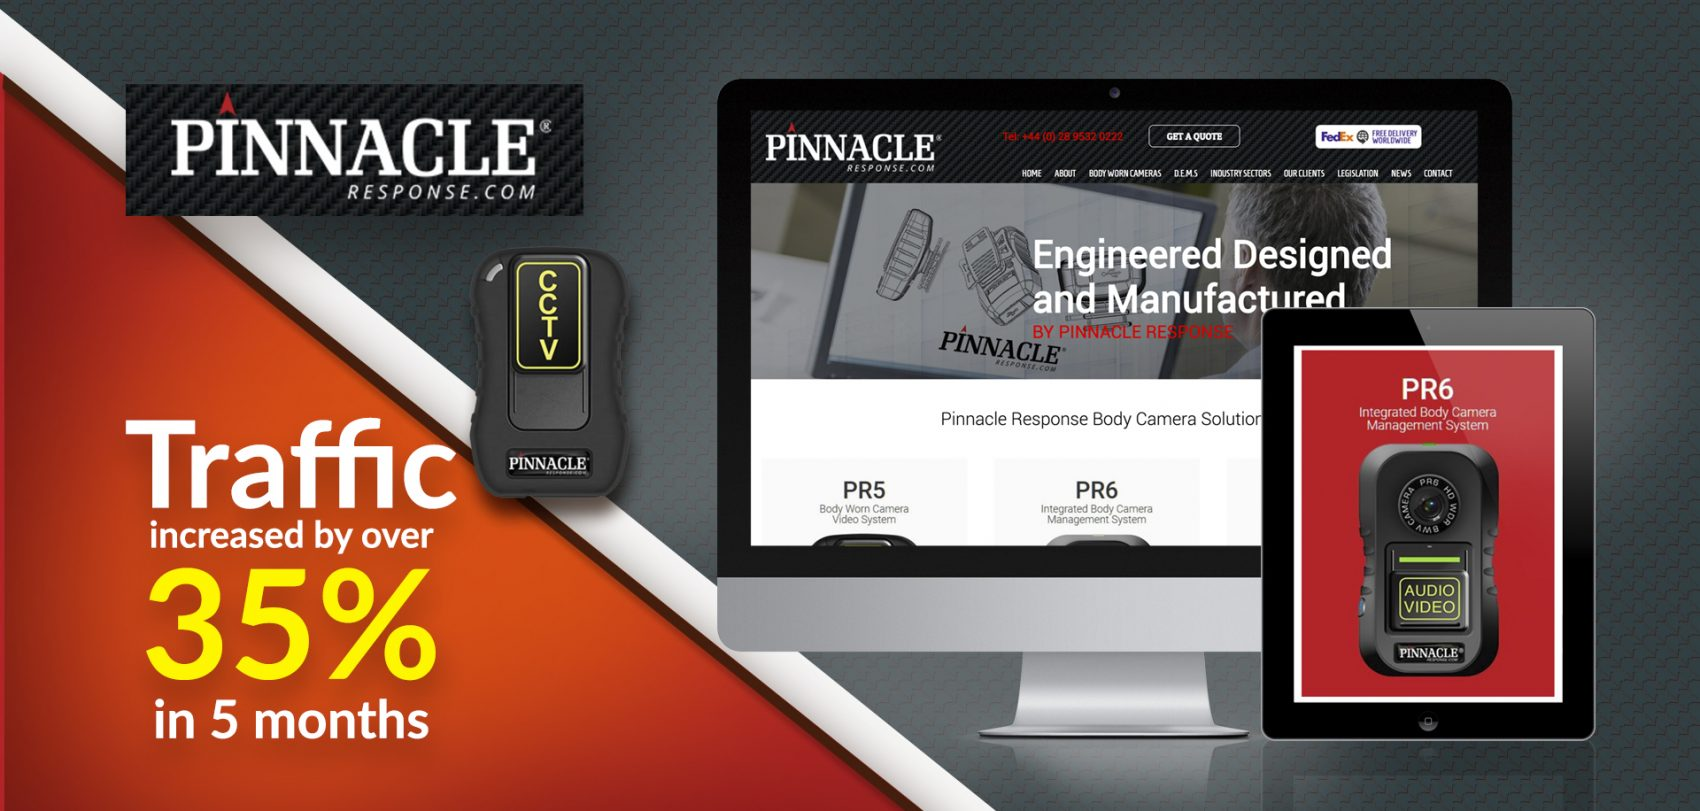 Pinnacle Response seo results